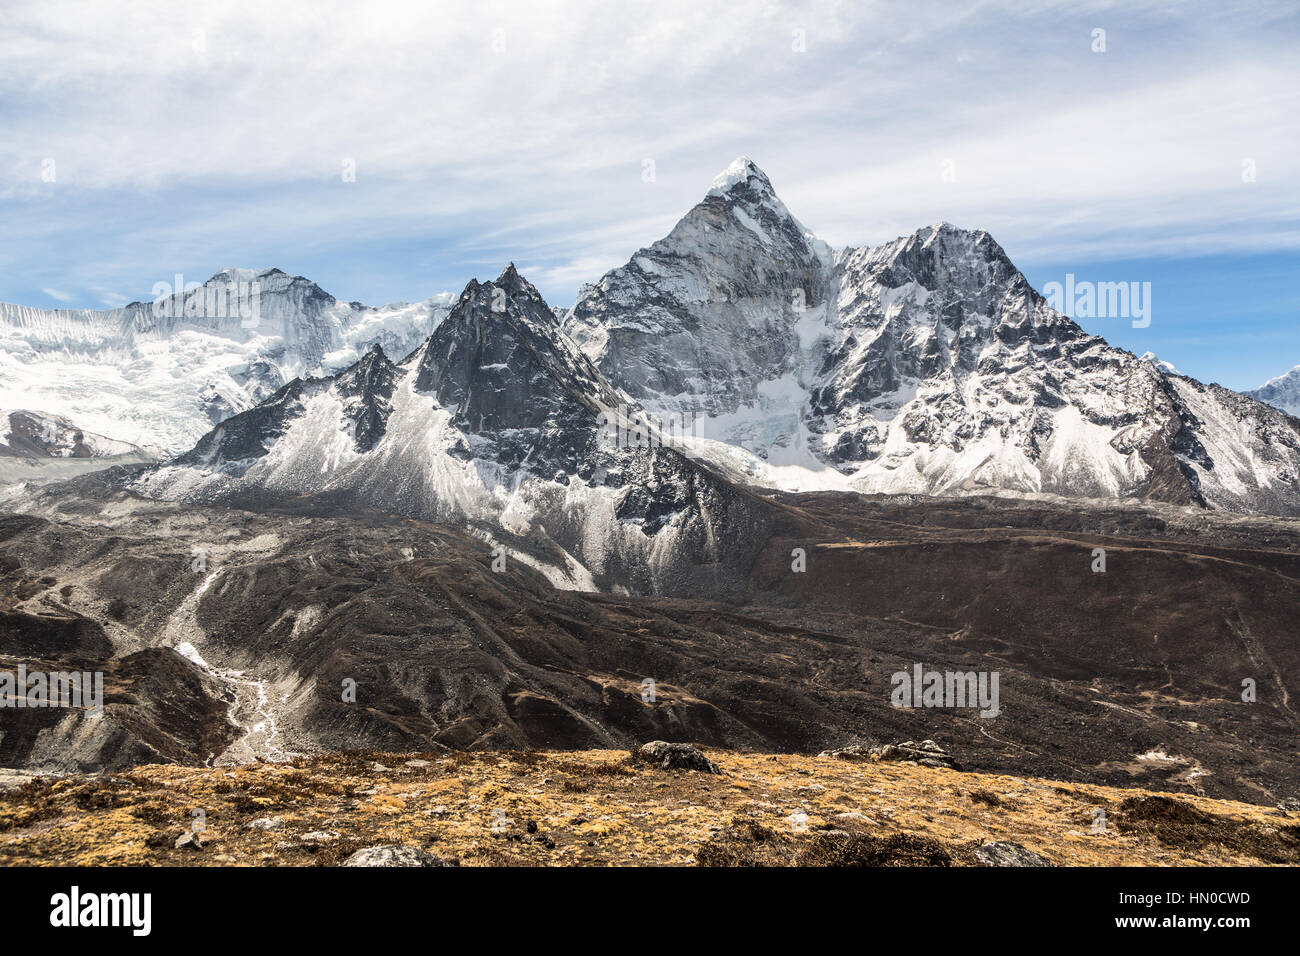 Amphu Gyabjen peak (5630m) view from the Chukung valley near the village of Dingboche on the way to the Everest Stock Photo